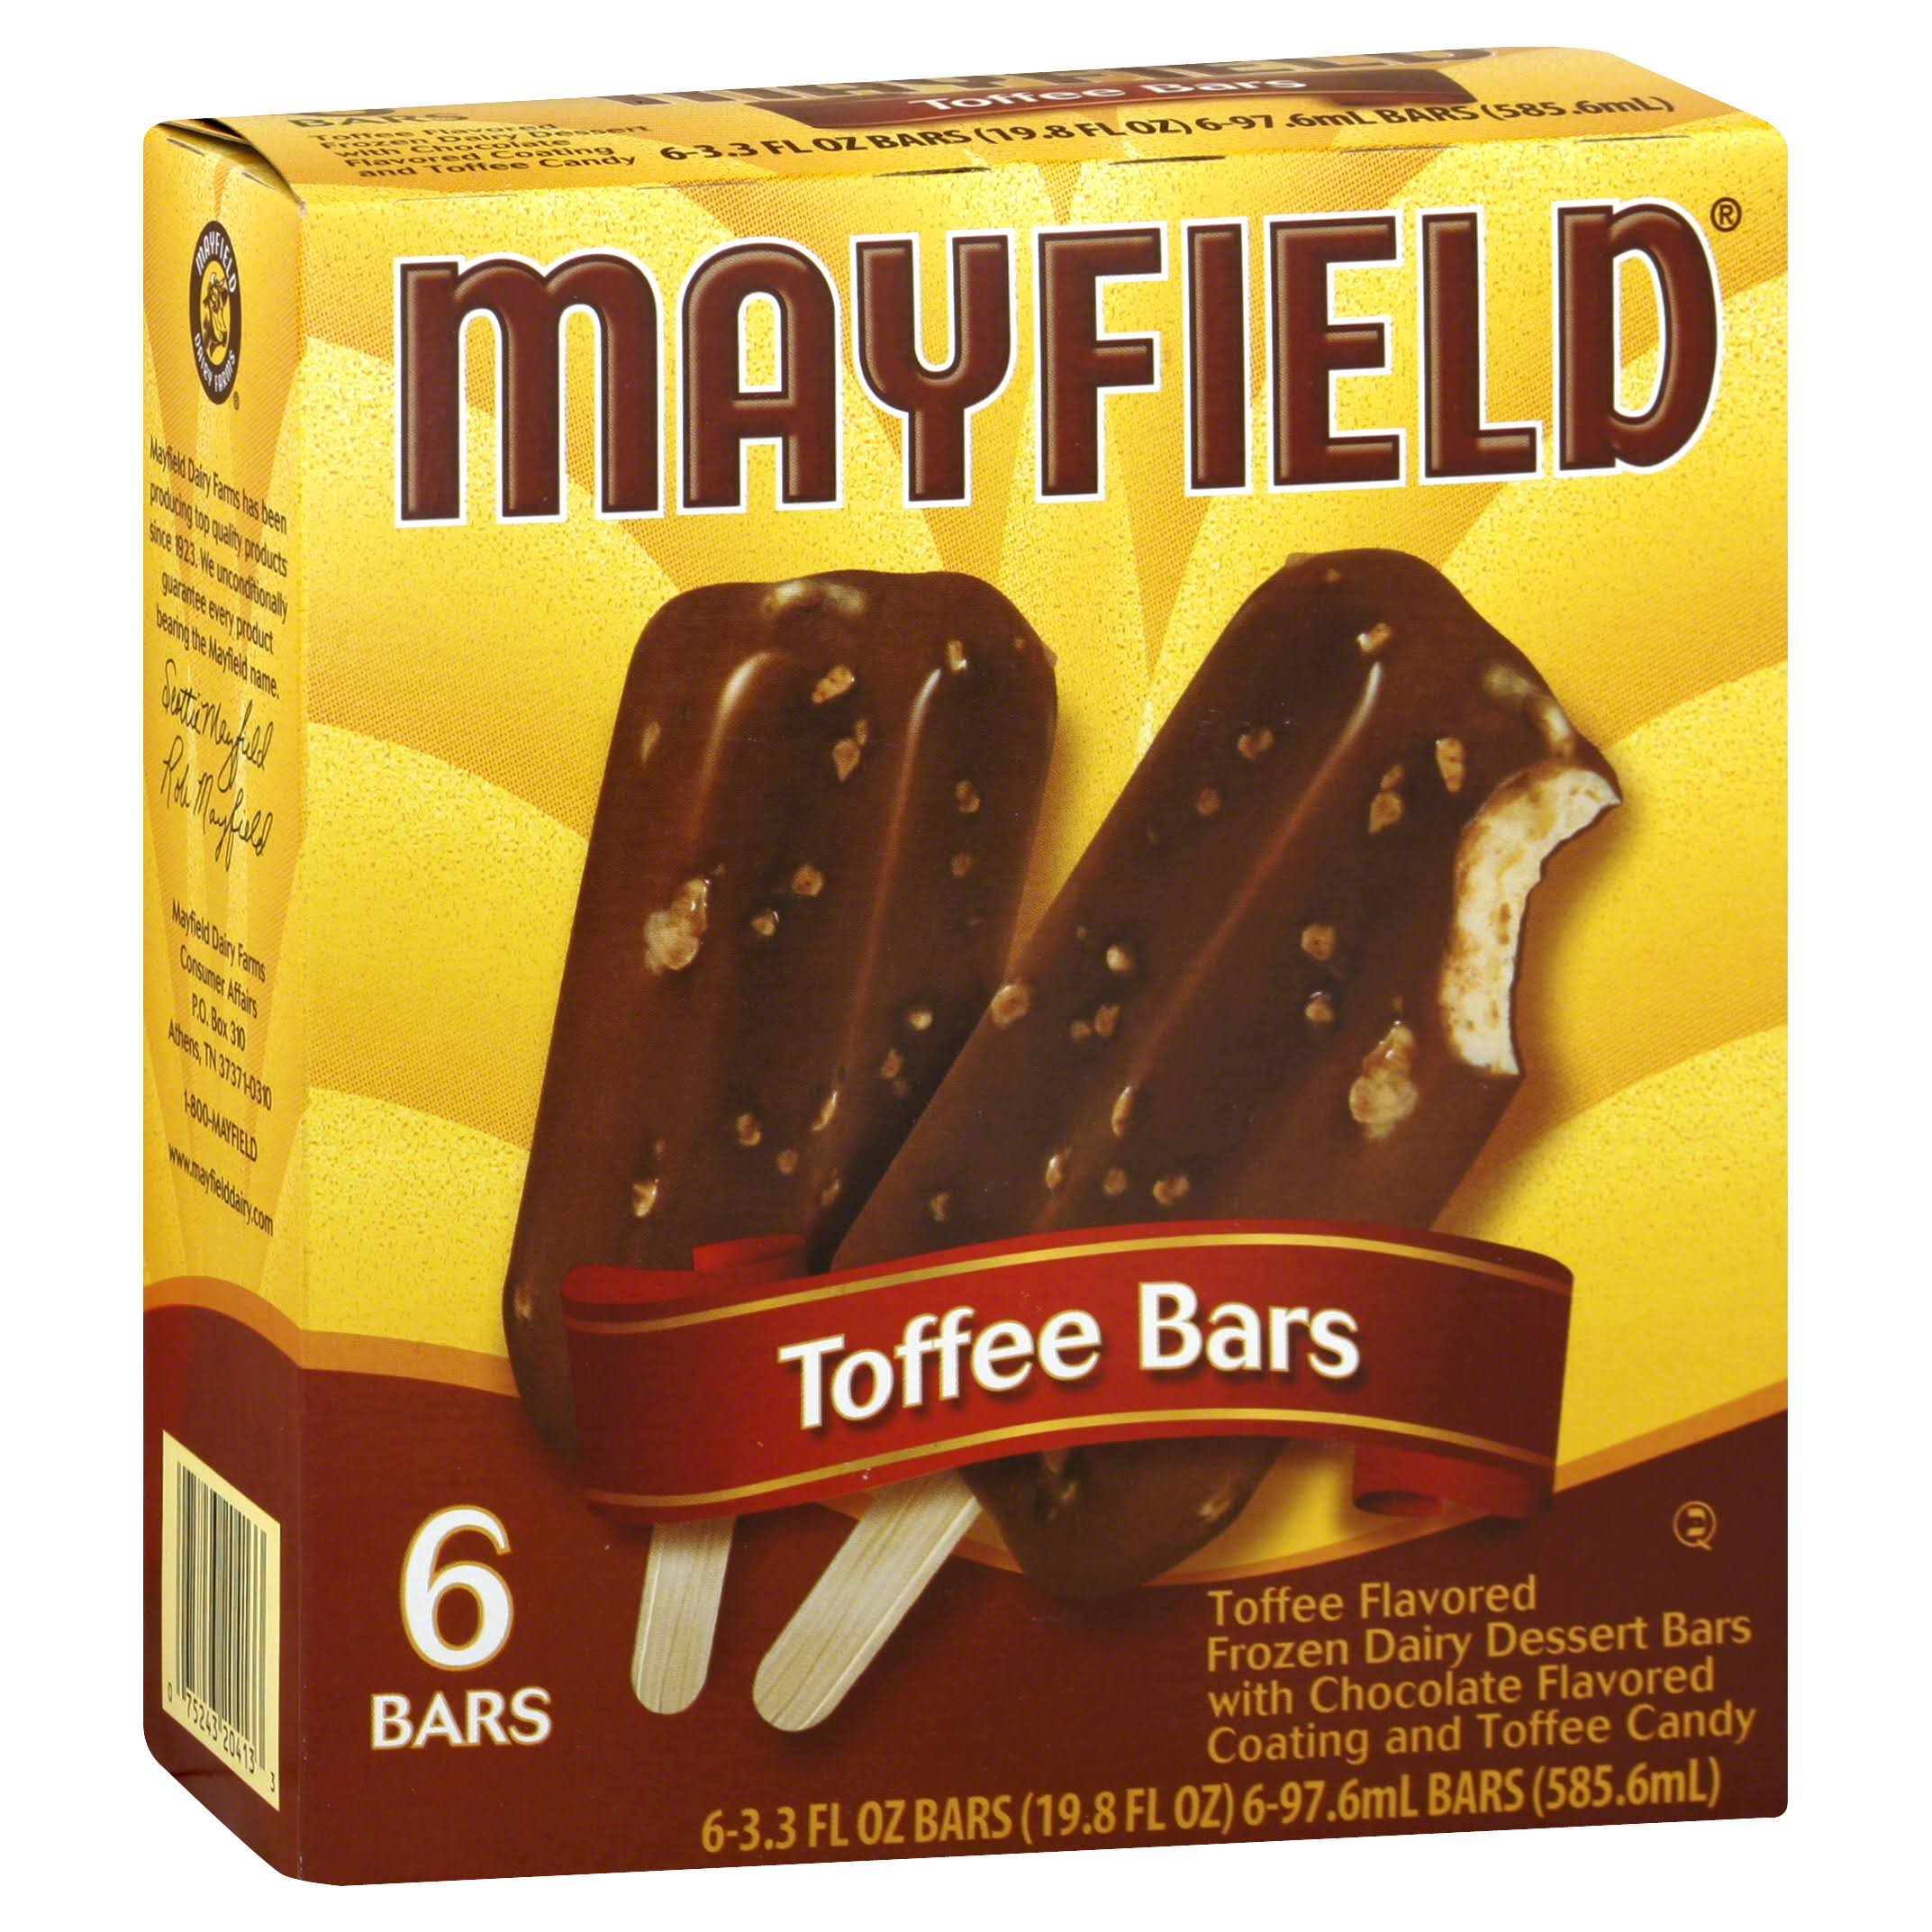 Mayfield Ice Cream Bars - Toffee Bars, 3.3oz, 6ct